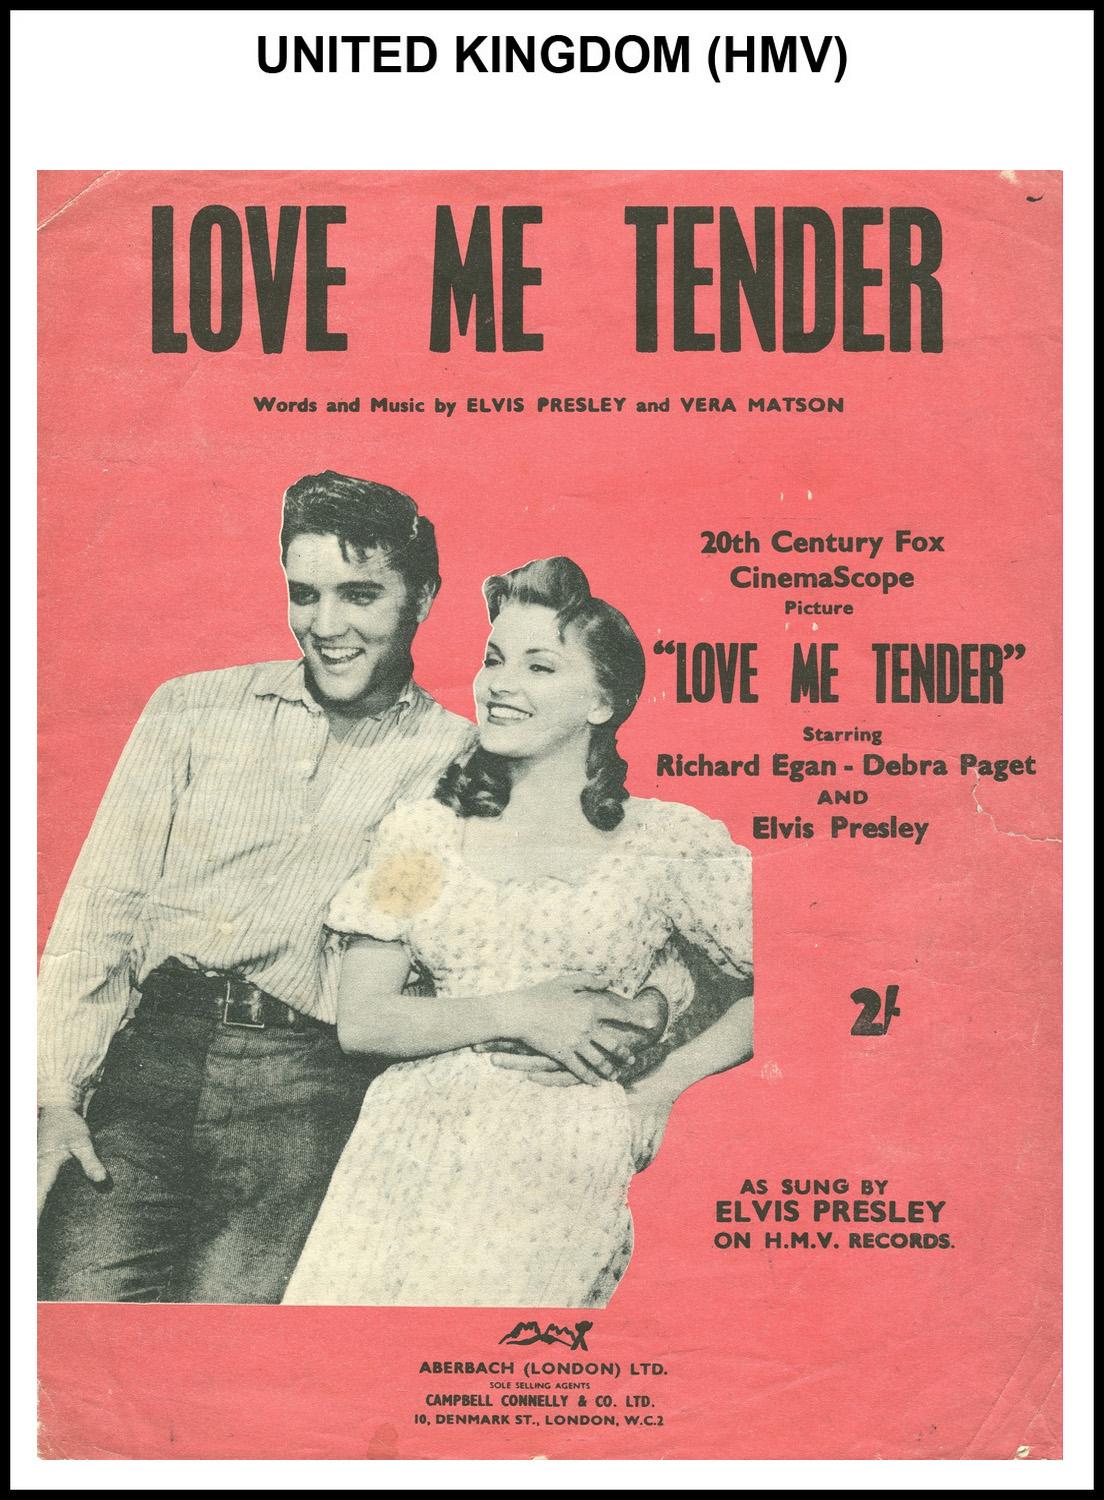 1956 - Love Me Tender (UK, HMV) (CHRIS GILES COLLECTION)